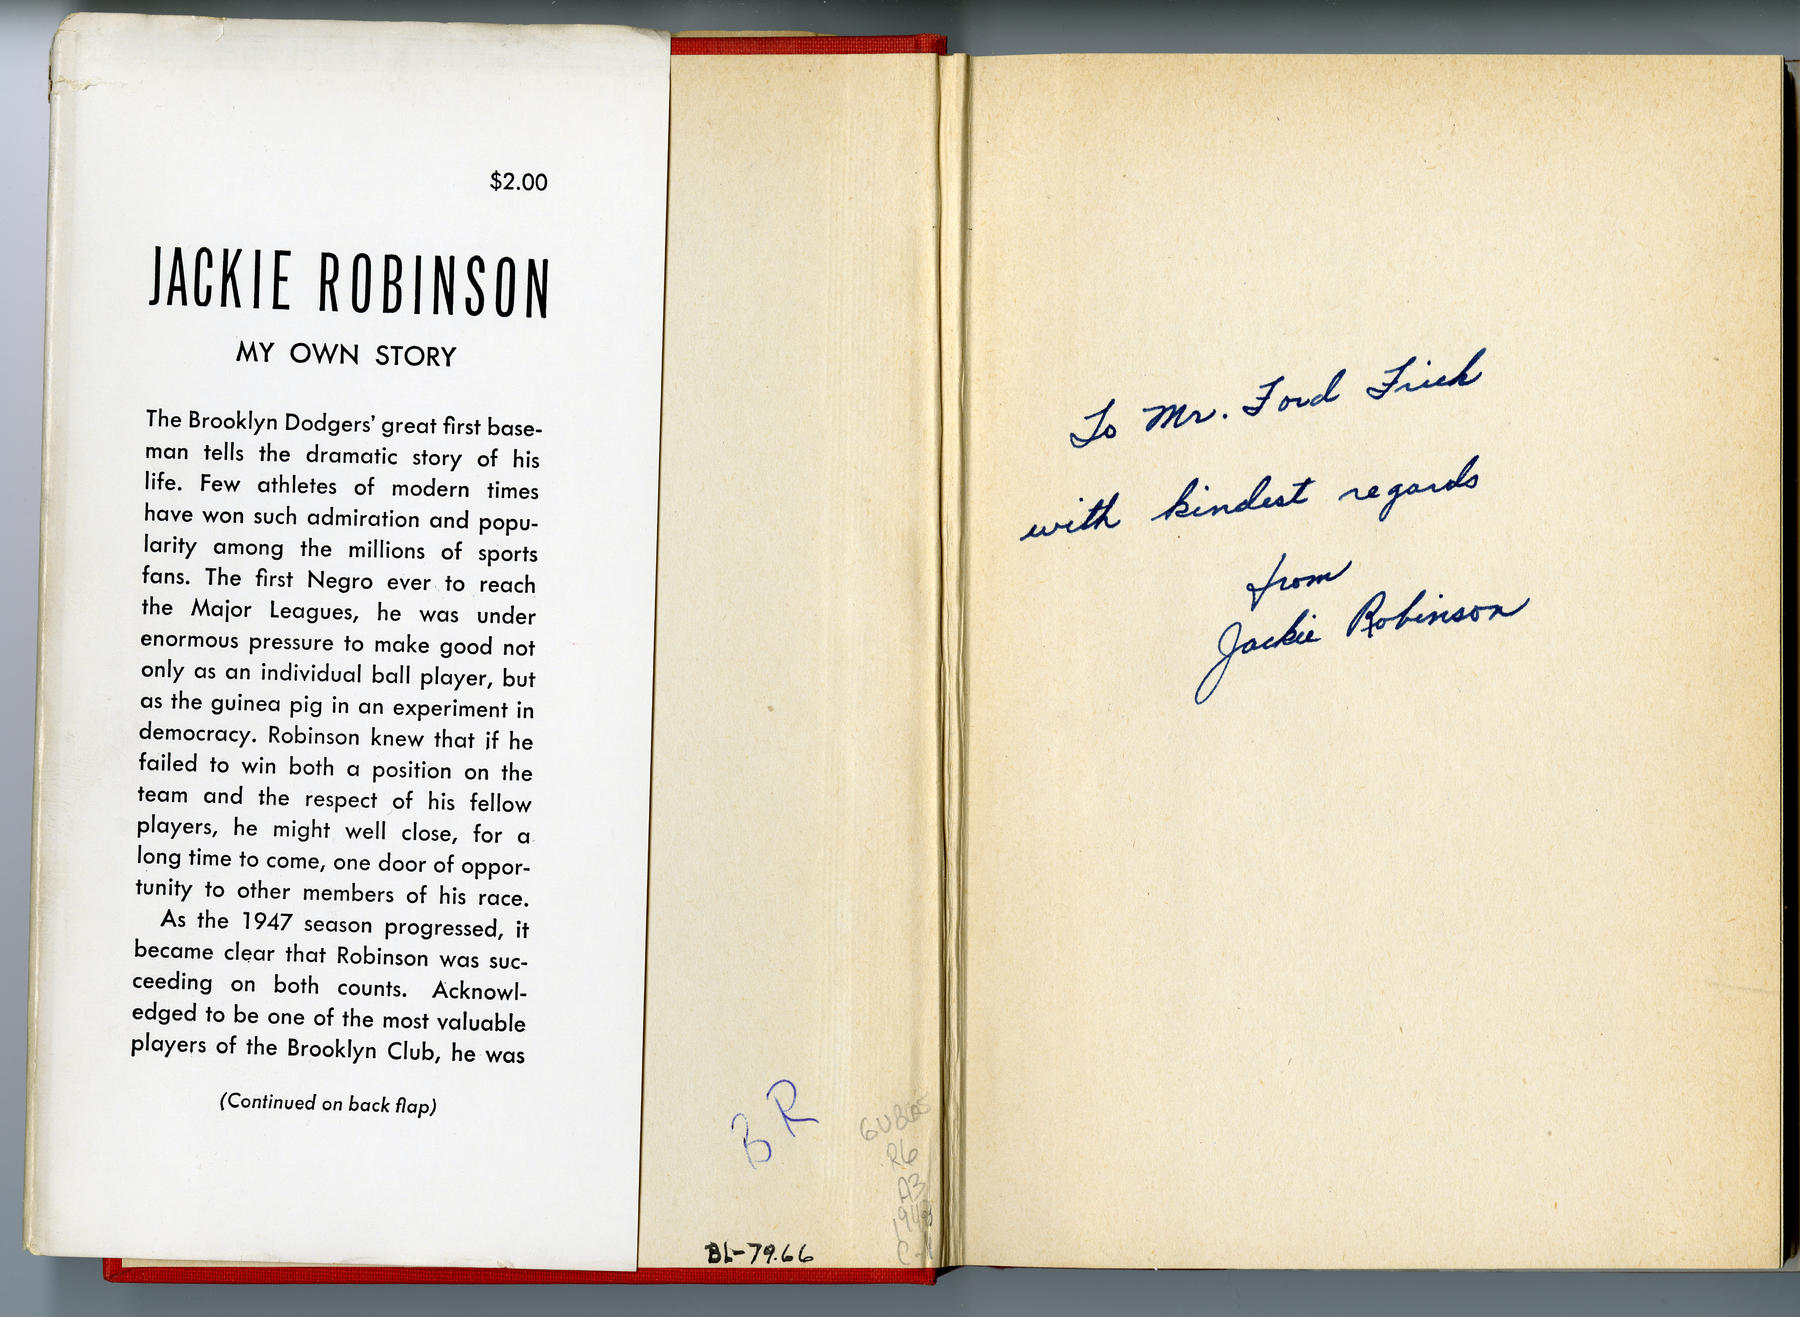 "This copy of Jackie Robinson's ""My Own Story"" was presented to former Comissioner Ford Frick. BL-79.66 (National Baseball Hall of Fame Library)"